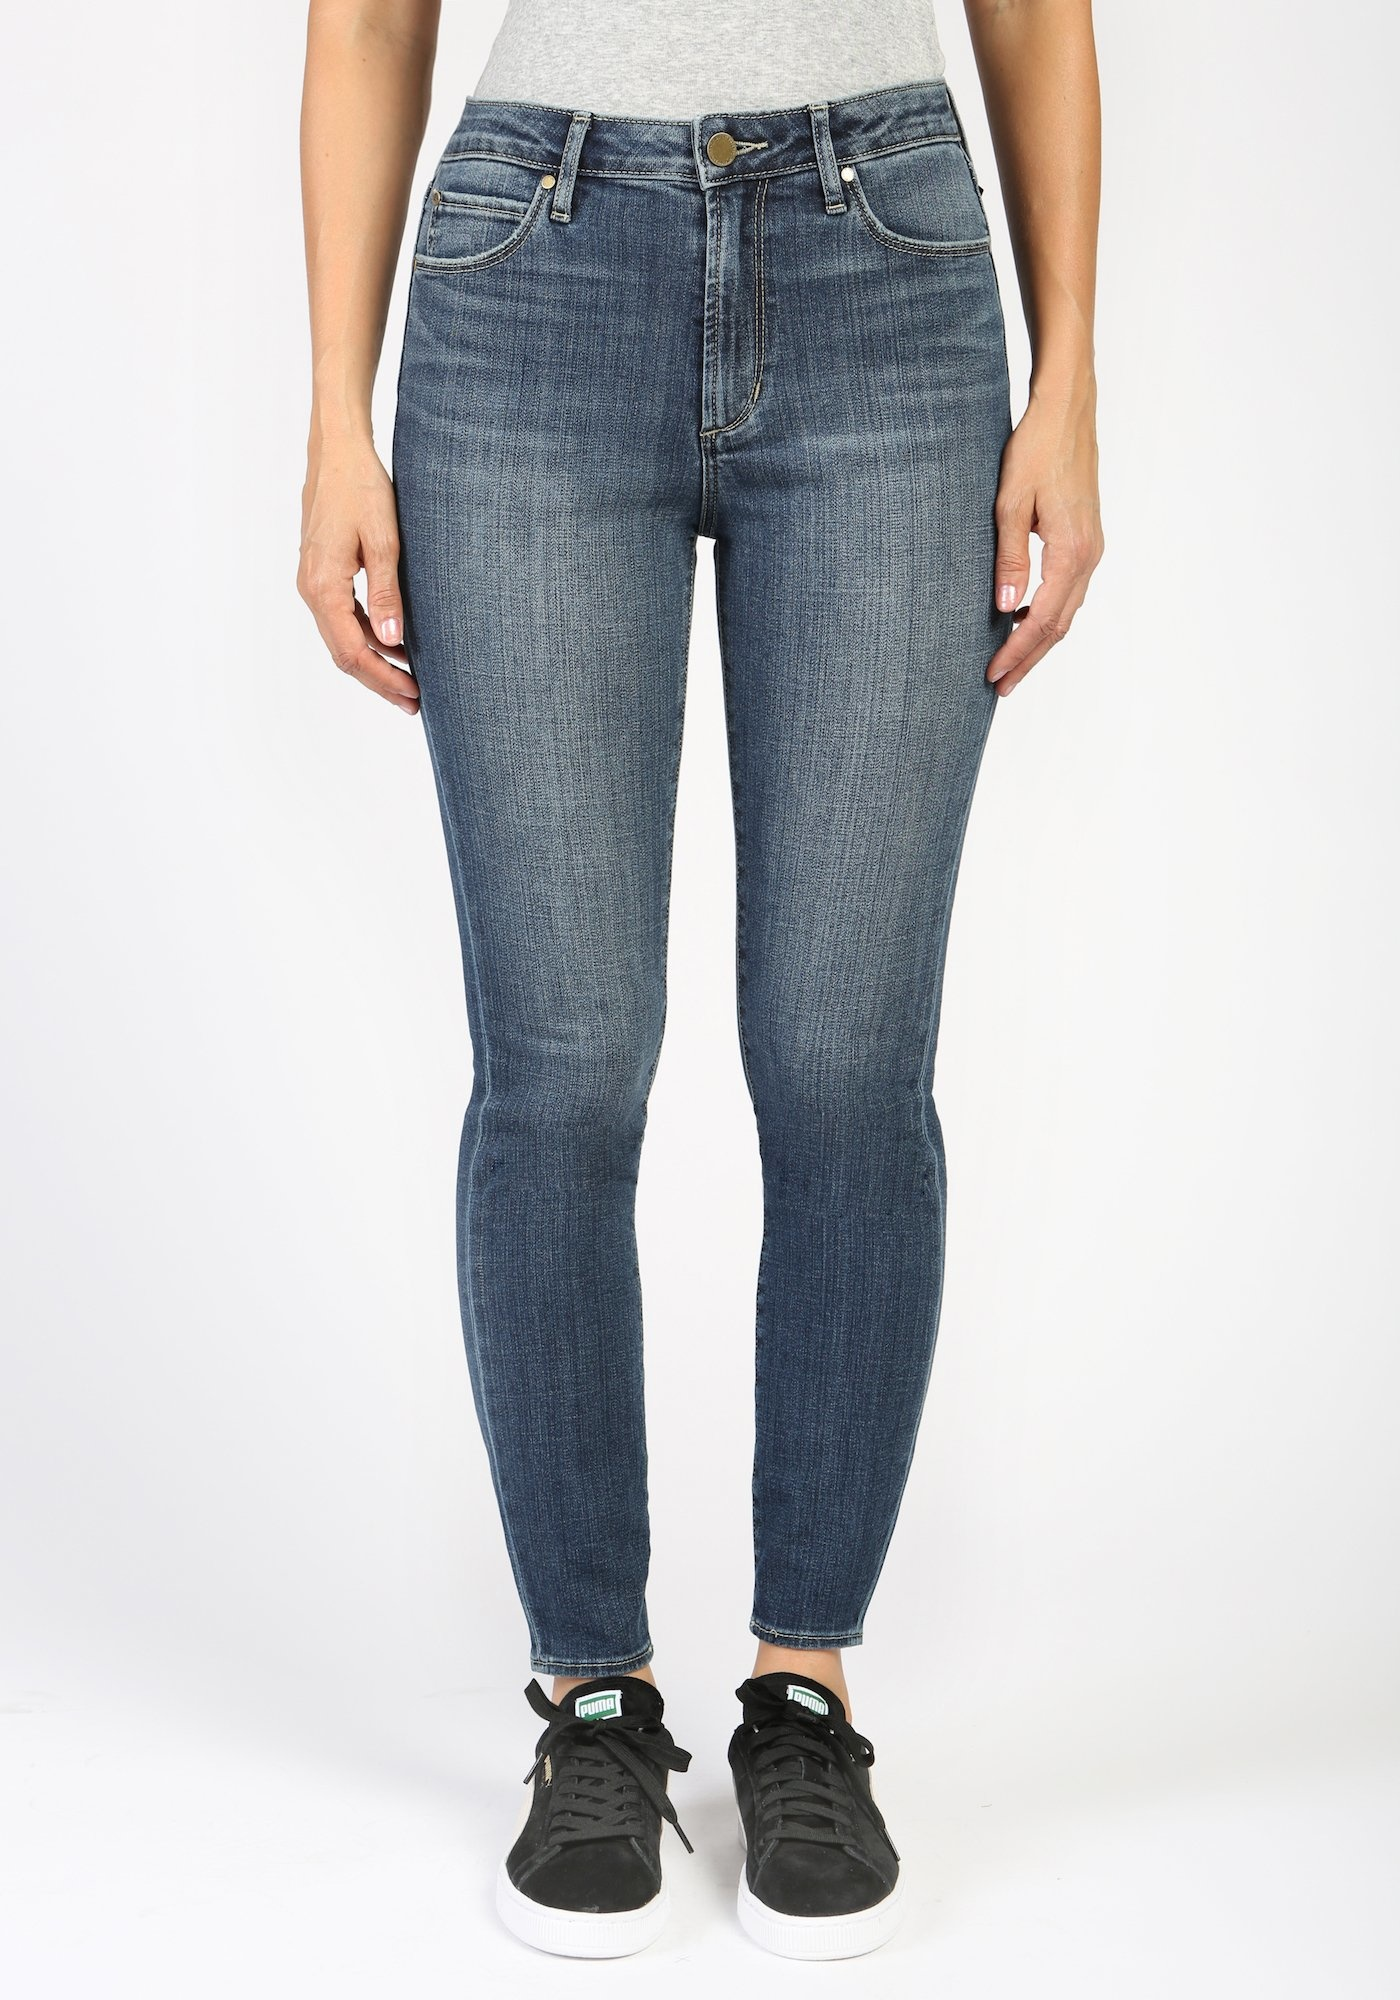 Articles of Society Heather High Rise Denim Crop